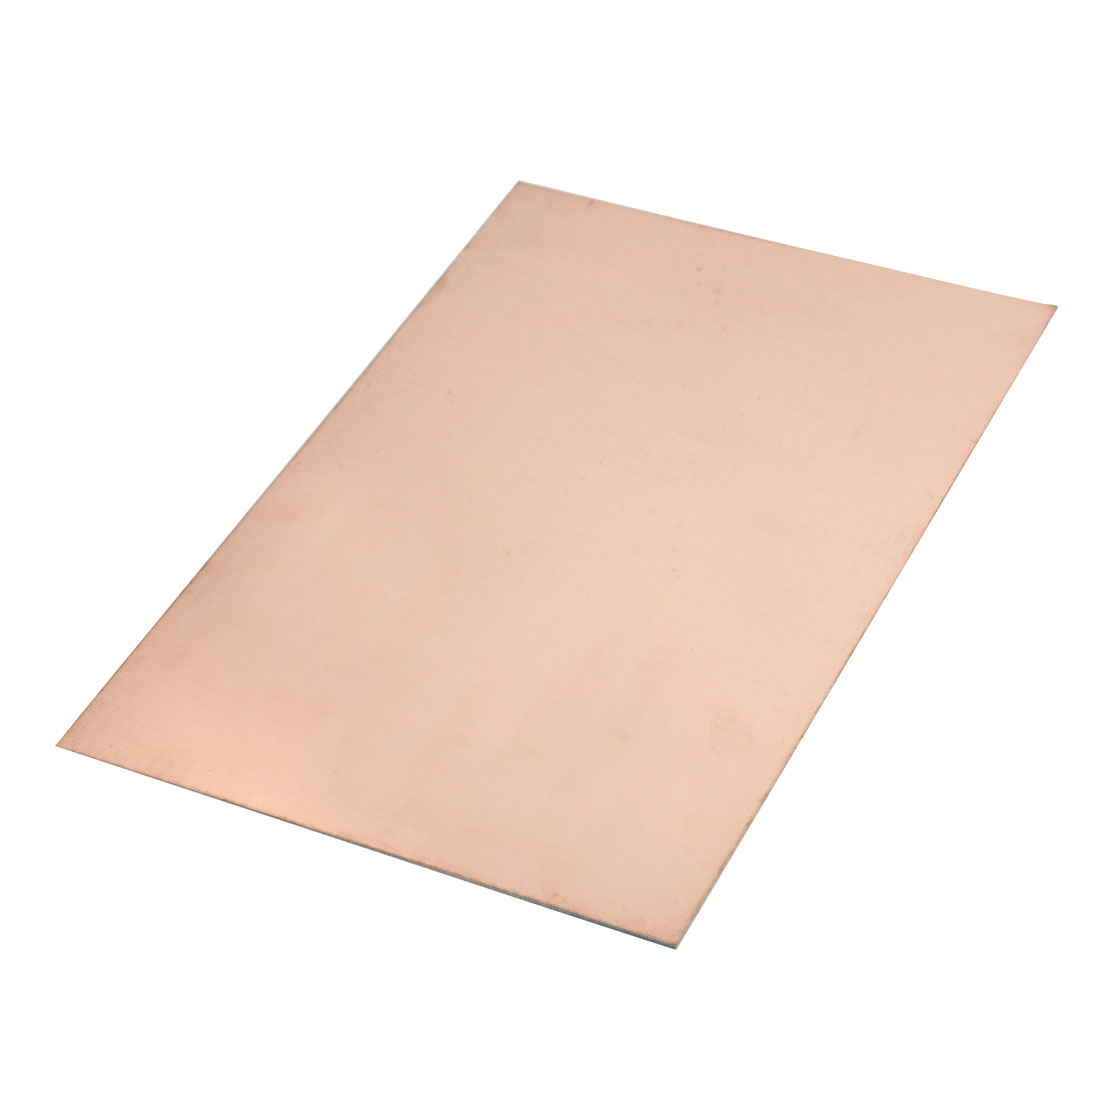 300mm x 200mm Blank Rosybrown FR4 Glass Fiber Single Sided Copper Clad Plated Laminate PCB Circuit Board for DIY